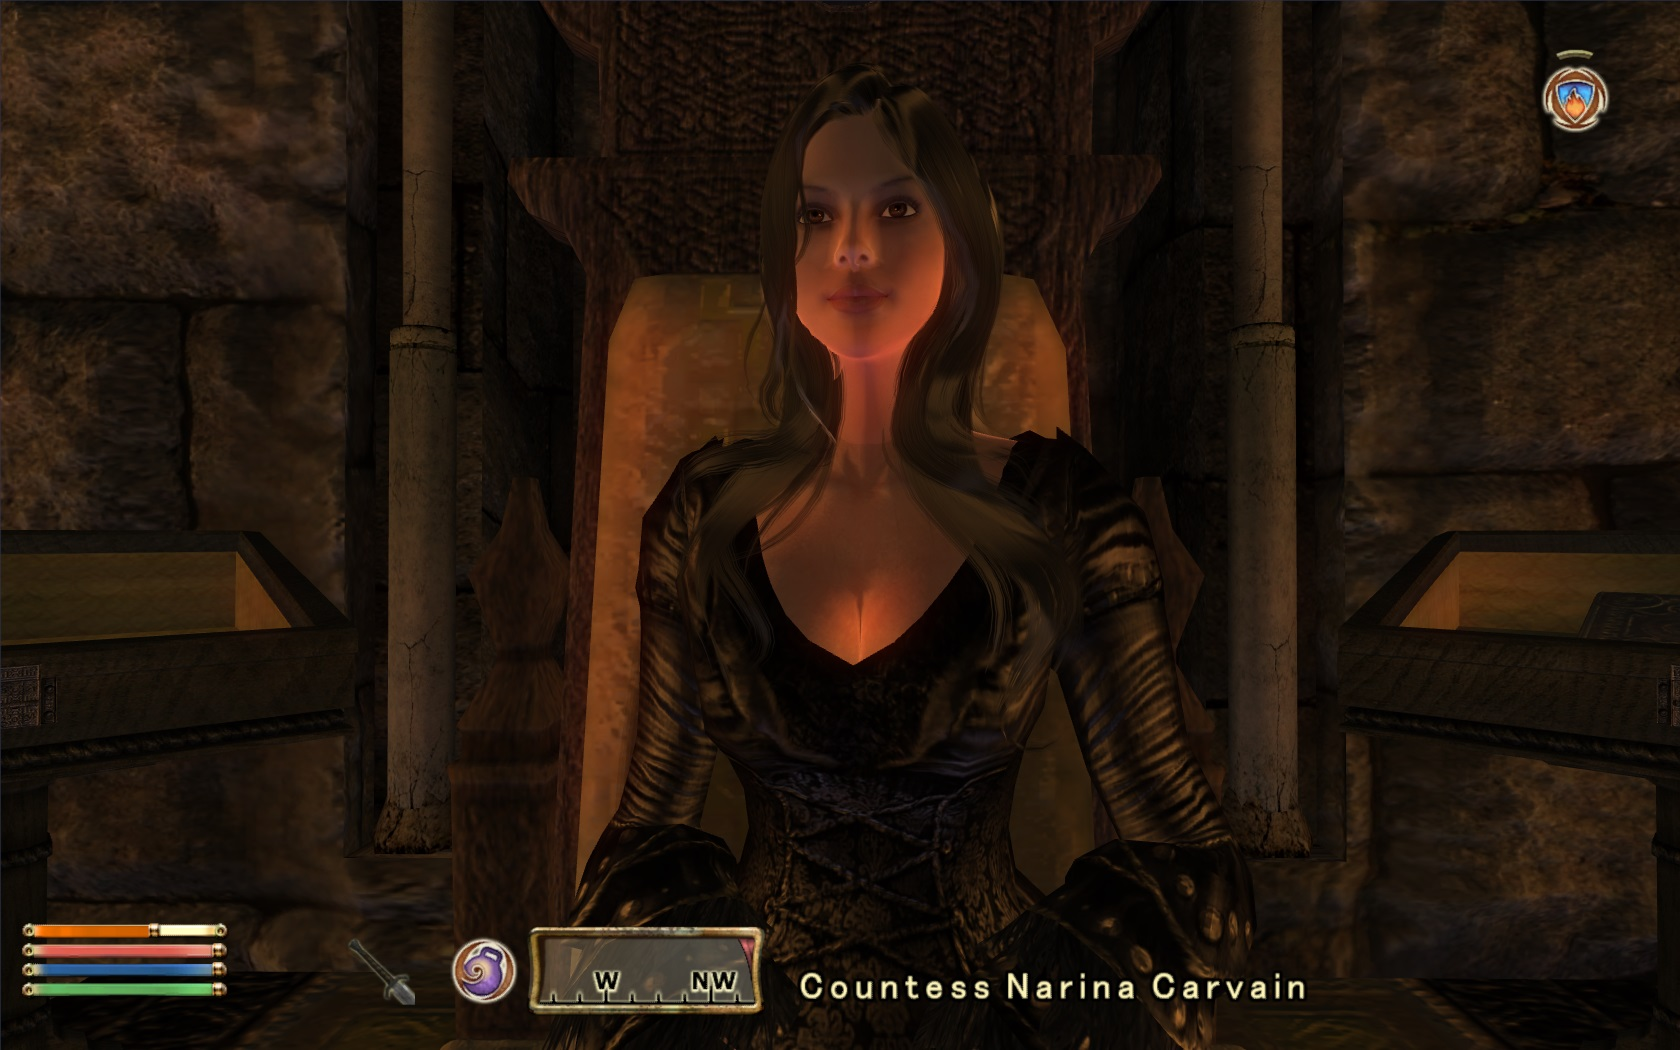 Countess Narina Carvain